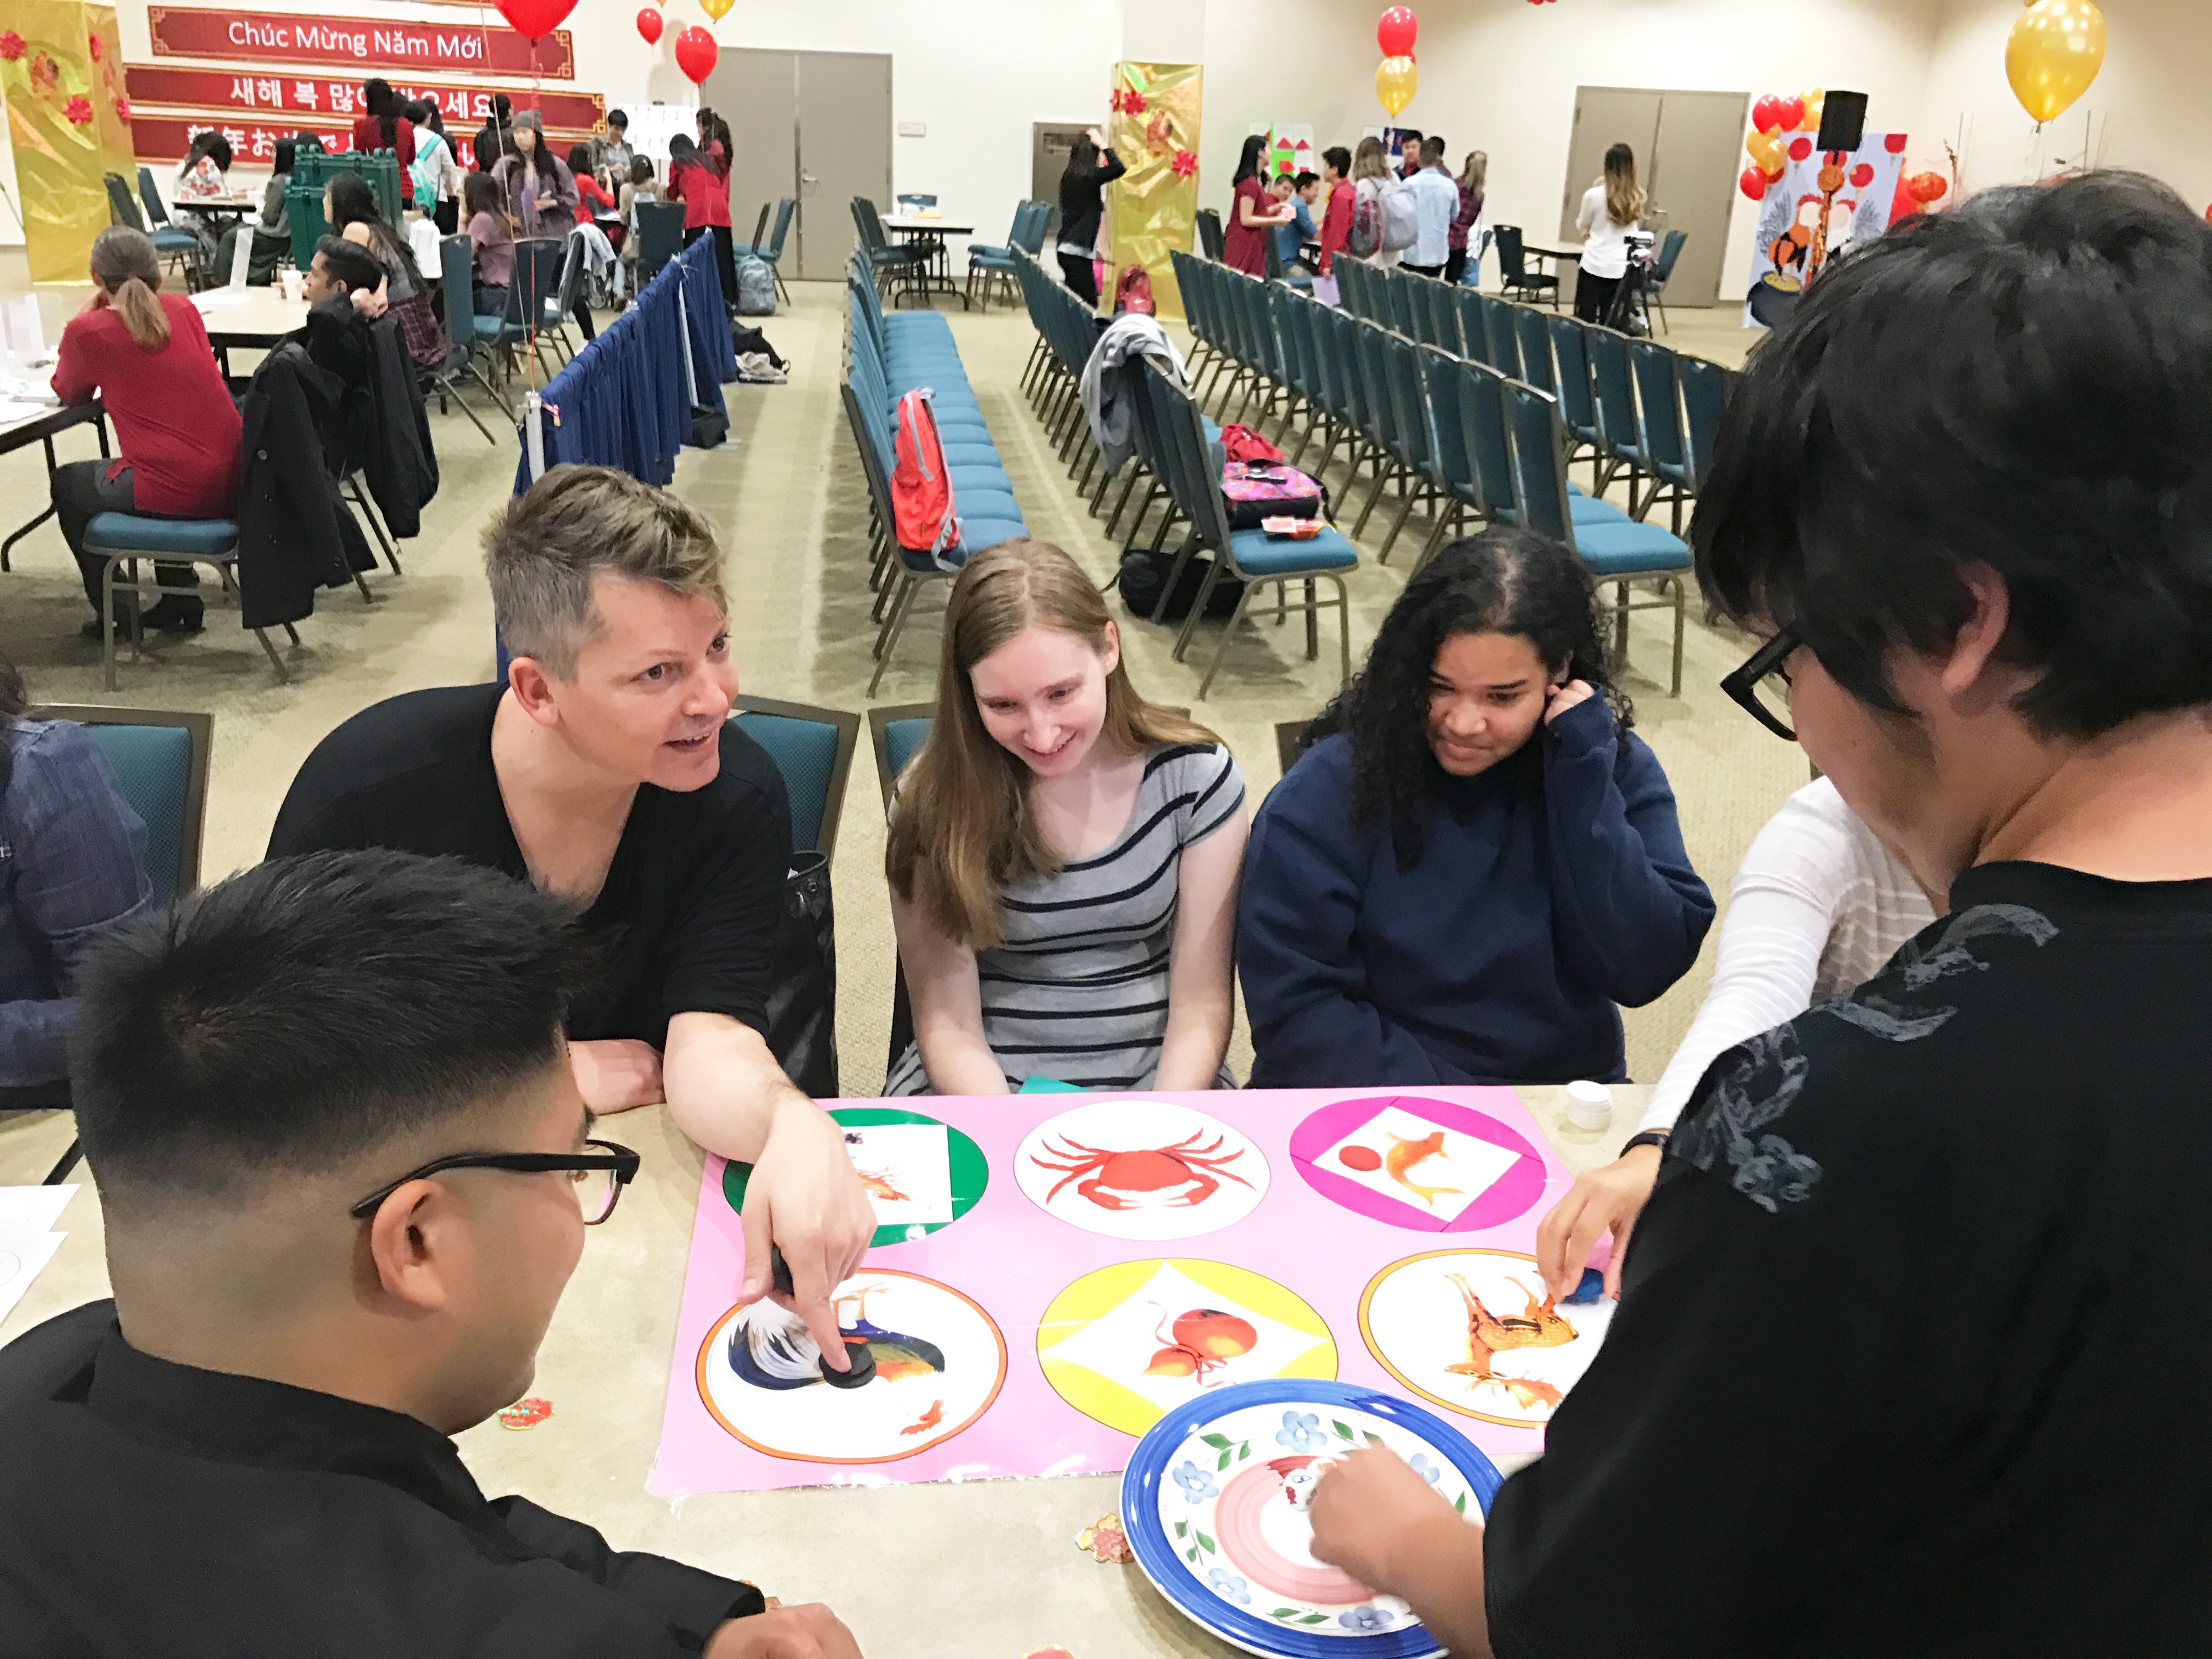 5 people are gathered around a table with circular illustrations playing a game. One man is pointing at a rooster drawing